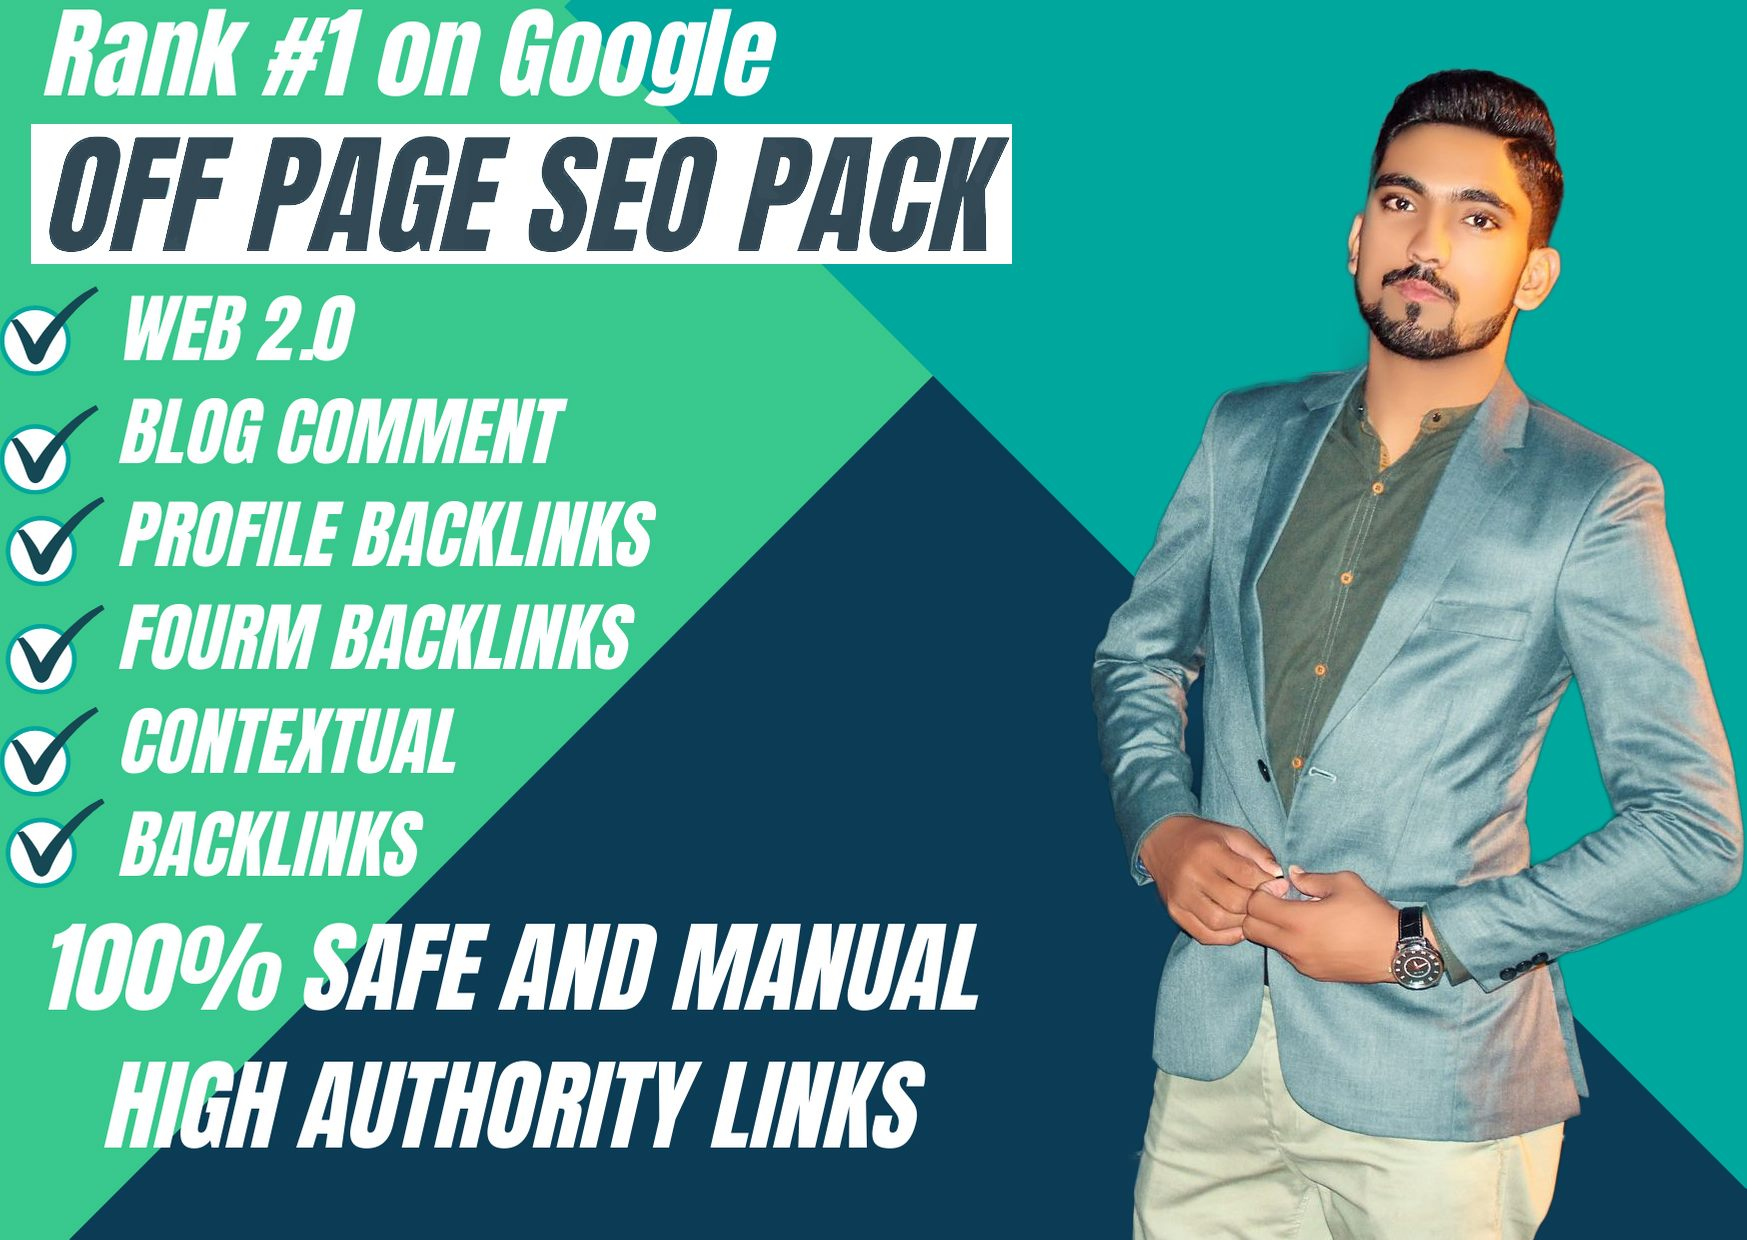 I will built a perfect monthly SEO pbn backlinks to Rank No 1 on Google